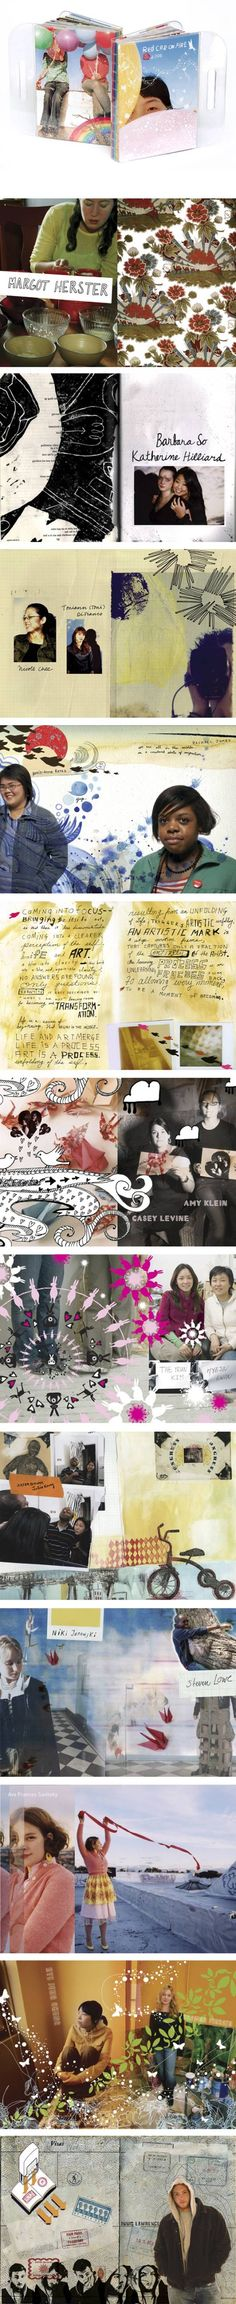 Love this, love the collage-y-ness  I already pinned this once but it's totally thrown together.